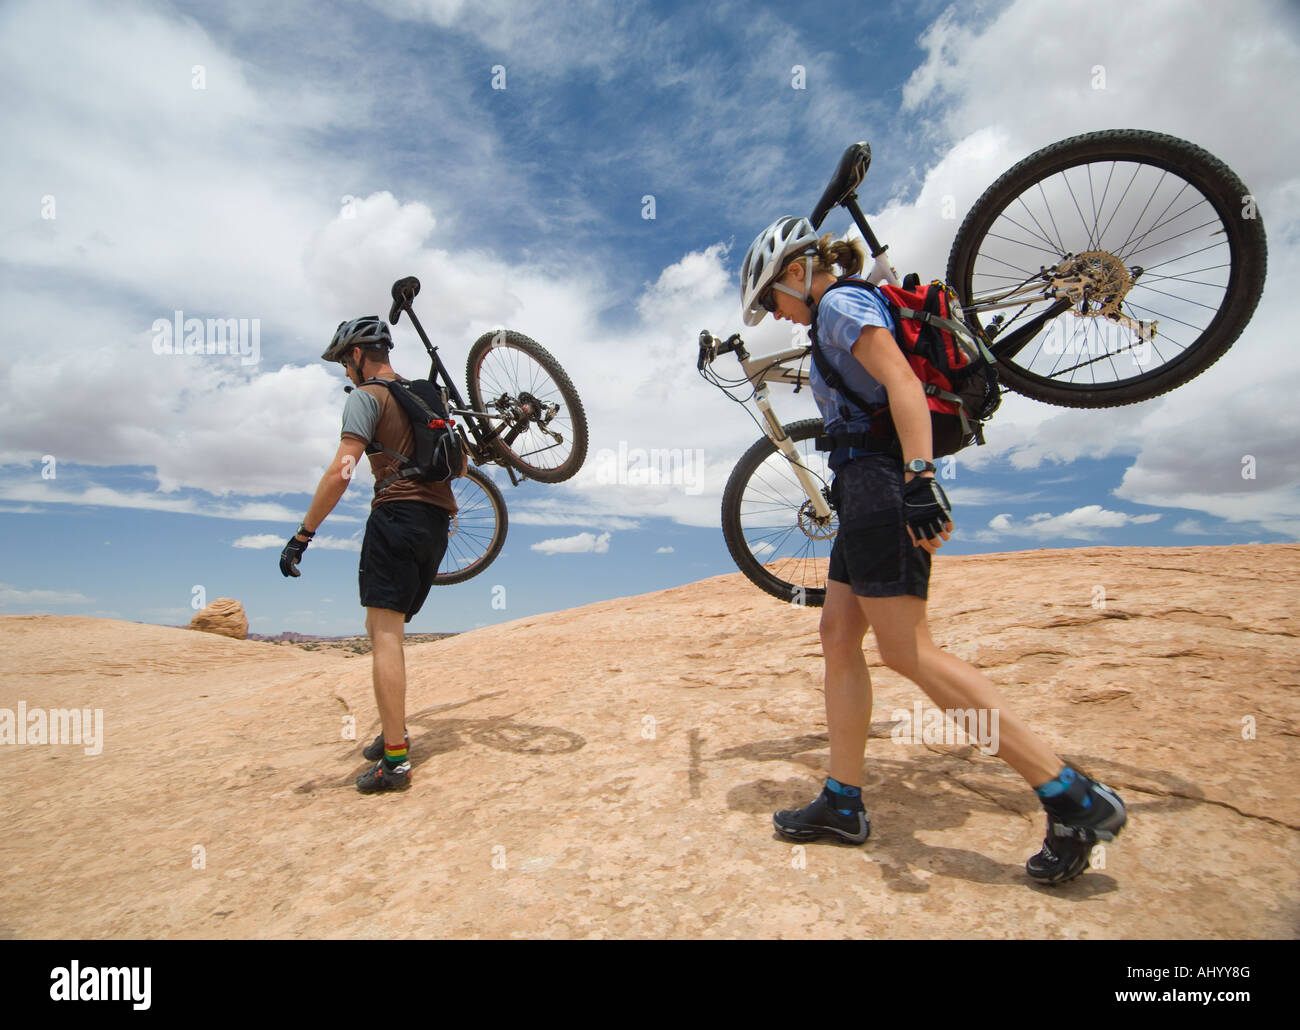 Couple carrying mountains bikes in desert - Stock Image